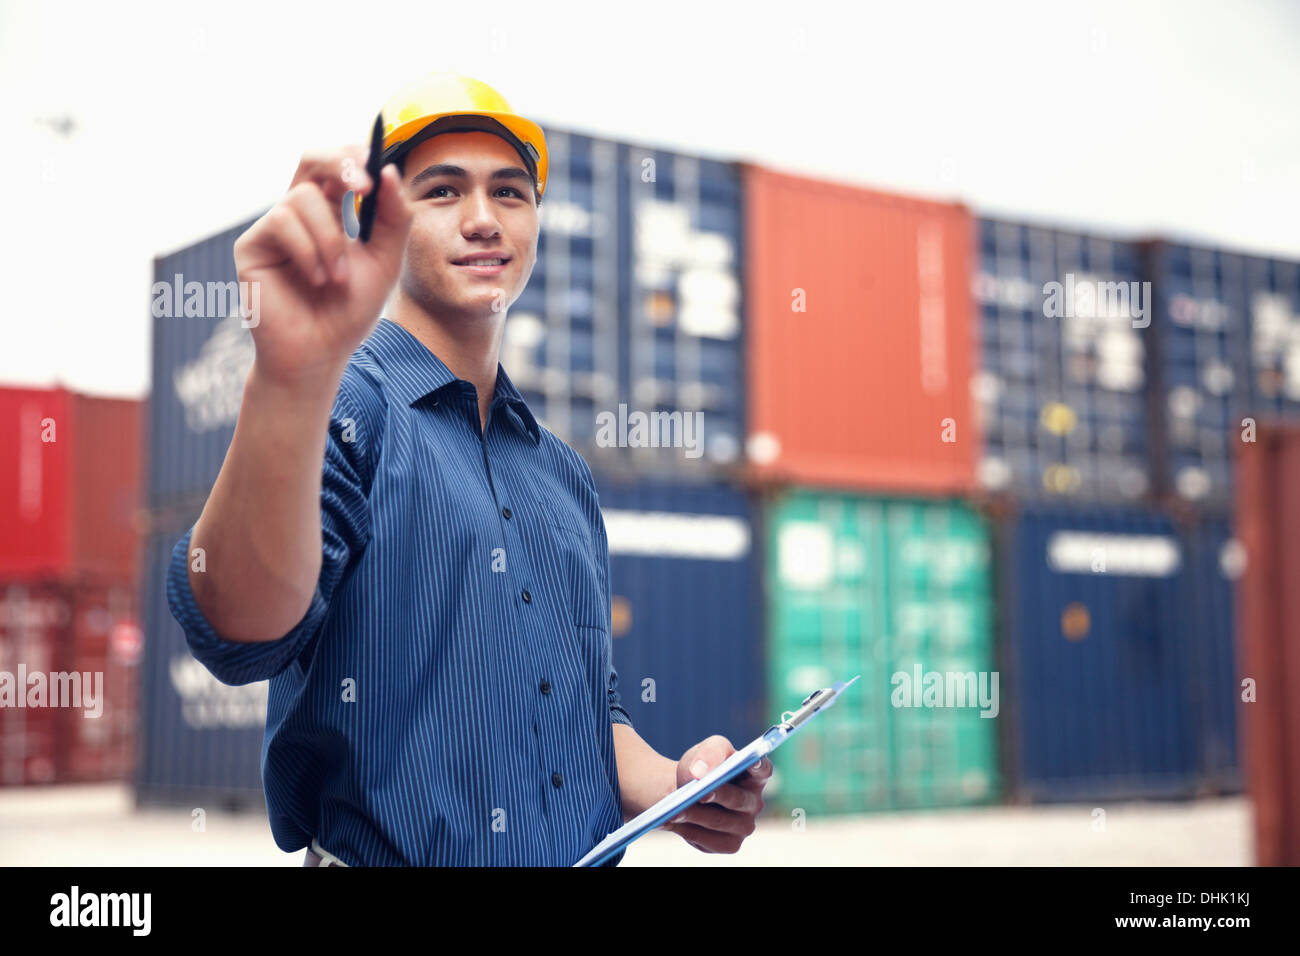 Smiling young engineer in protective work wear in a shipping yard examining cargo - Stock Image